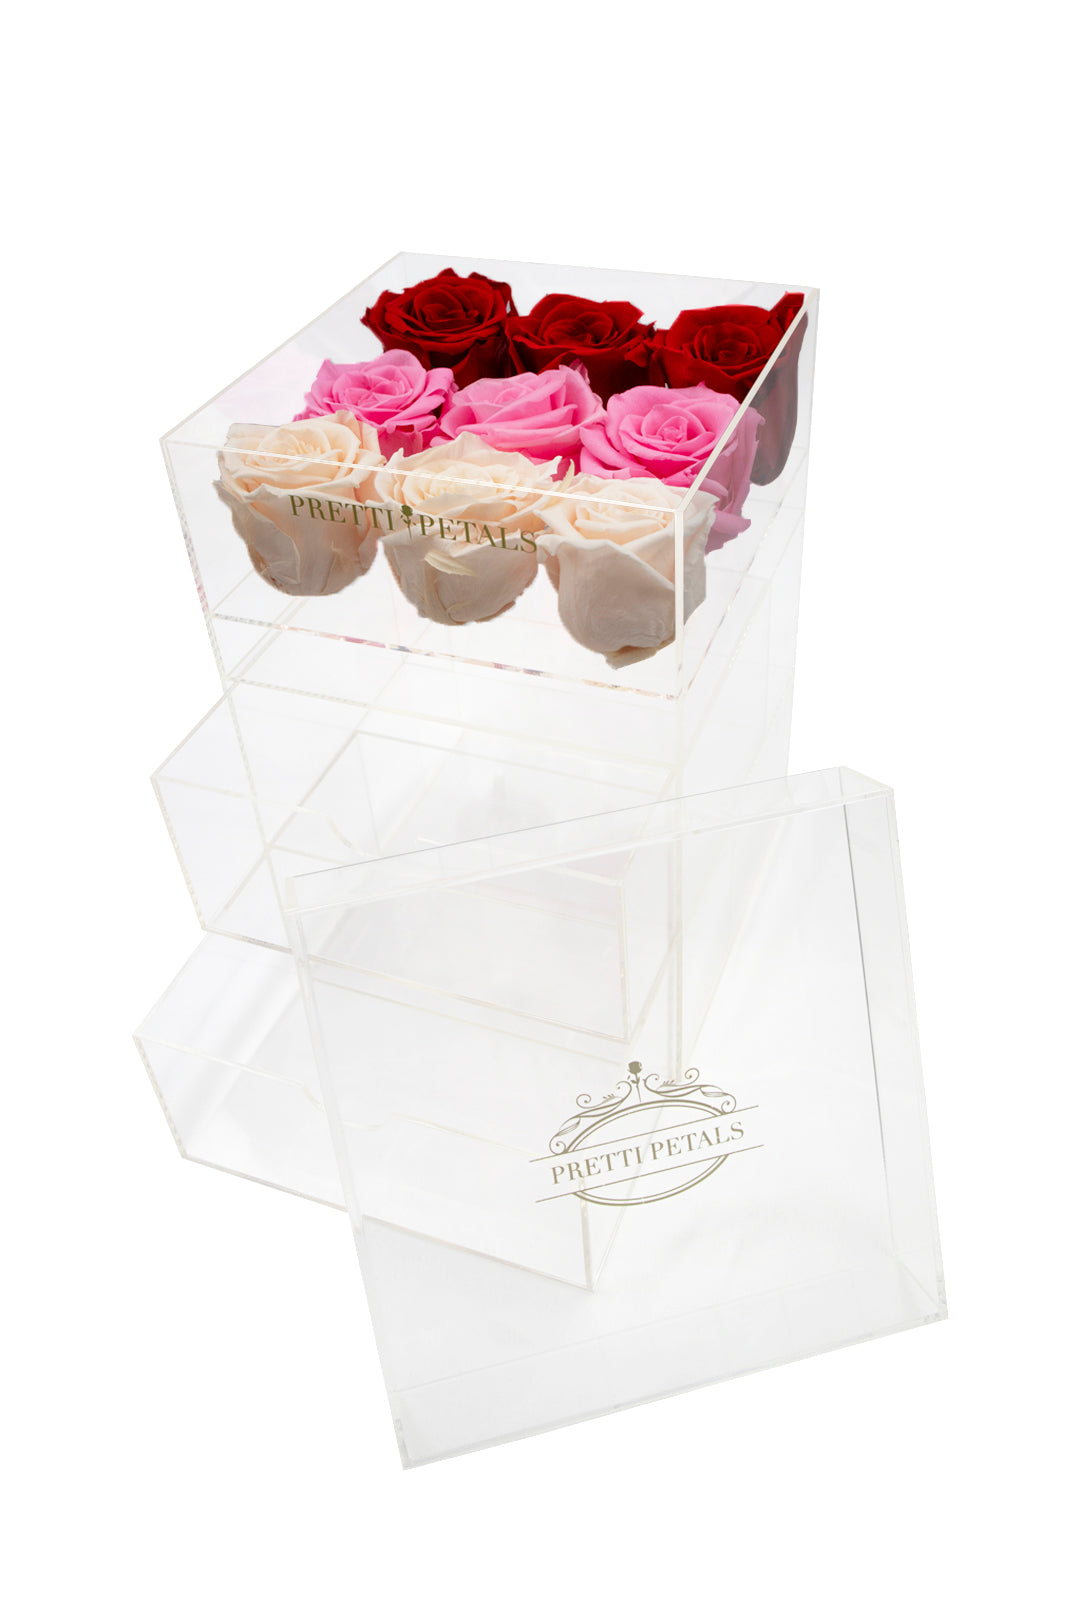 Nine Rose Claire Jewelry Box